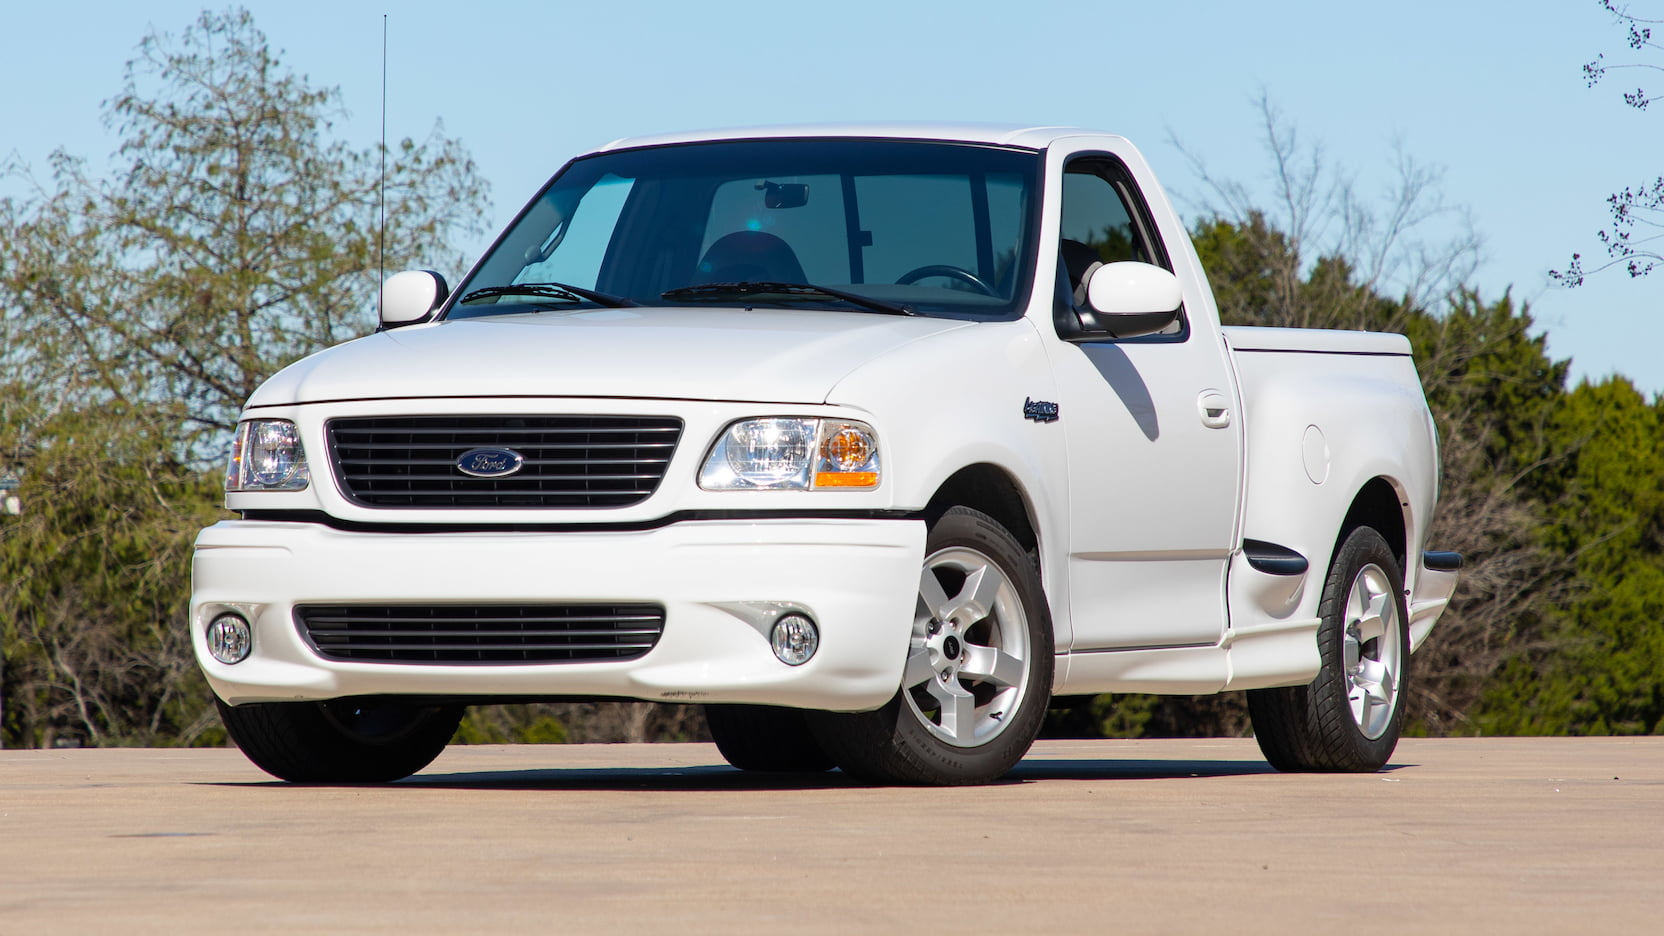 2003 Ford F150 SVT Lightning Pickup